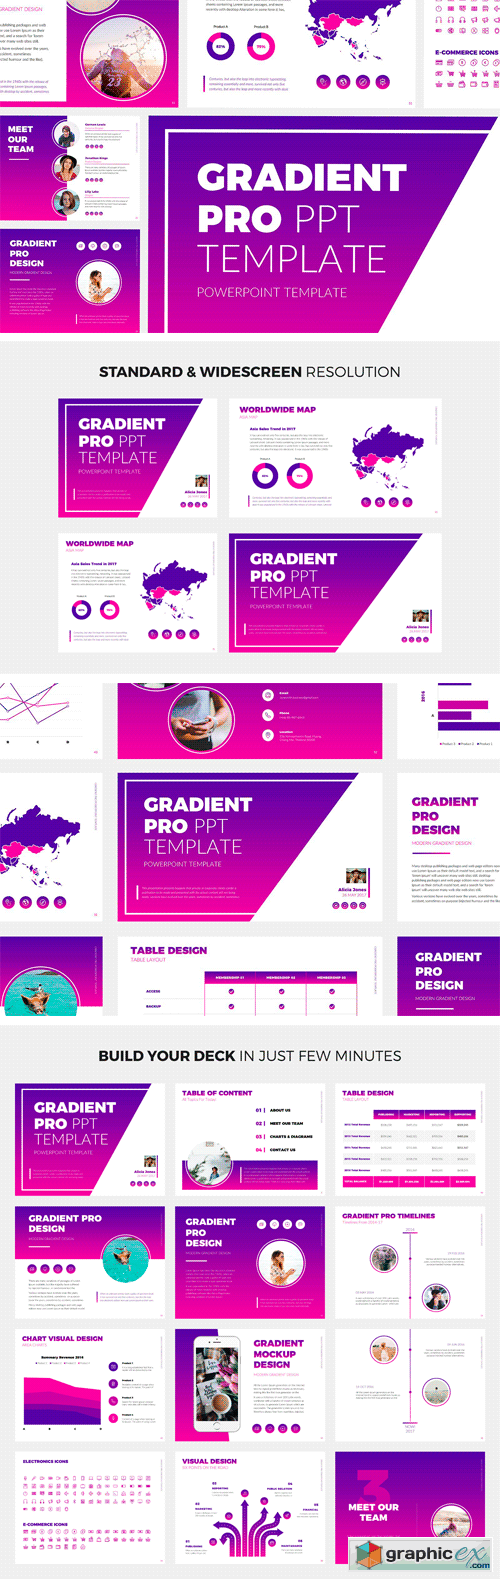 Gradient Pro PowerPoint Template » Free Download Vector Stock Image